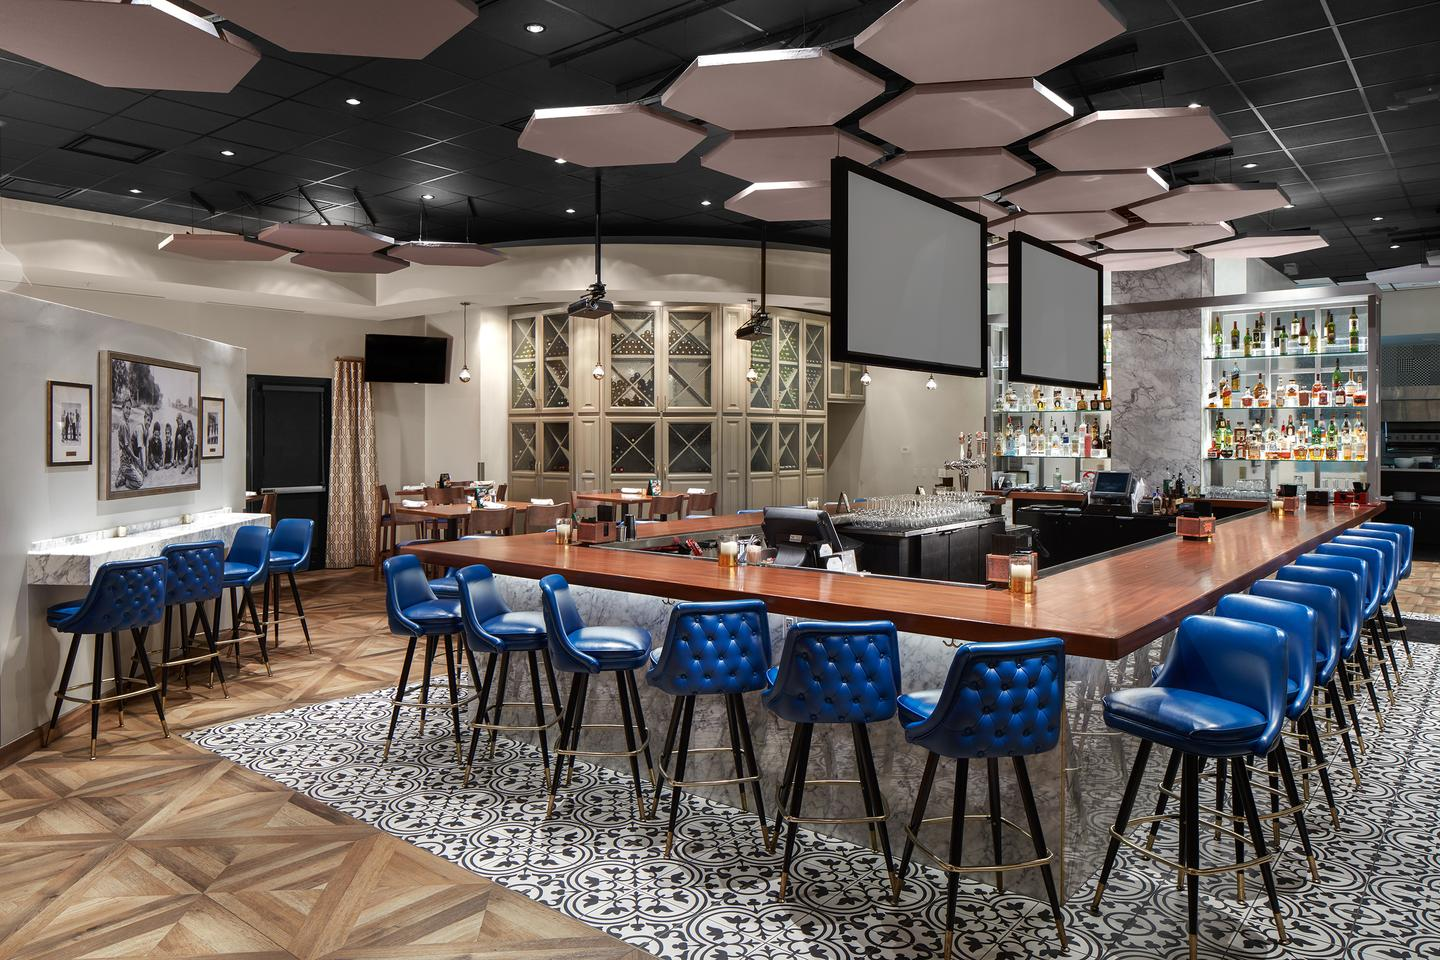 Modern industrial architecture and design blue barstools